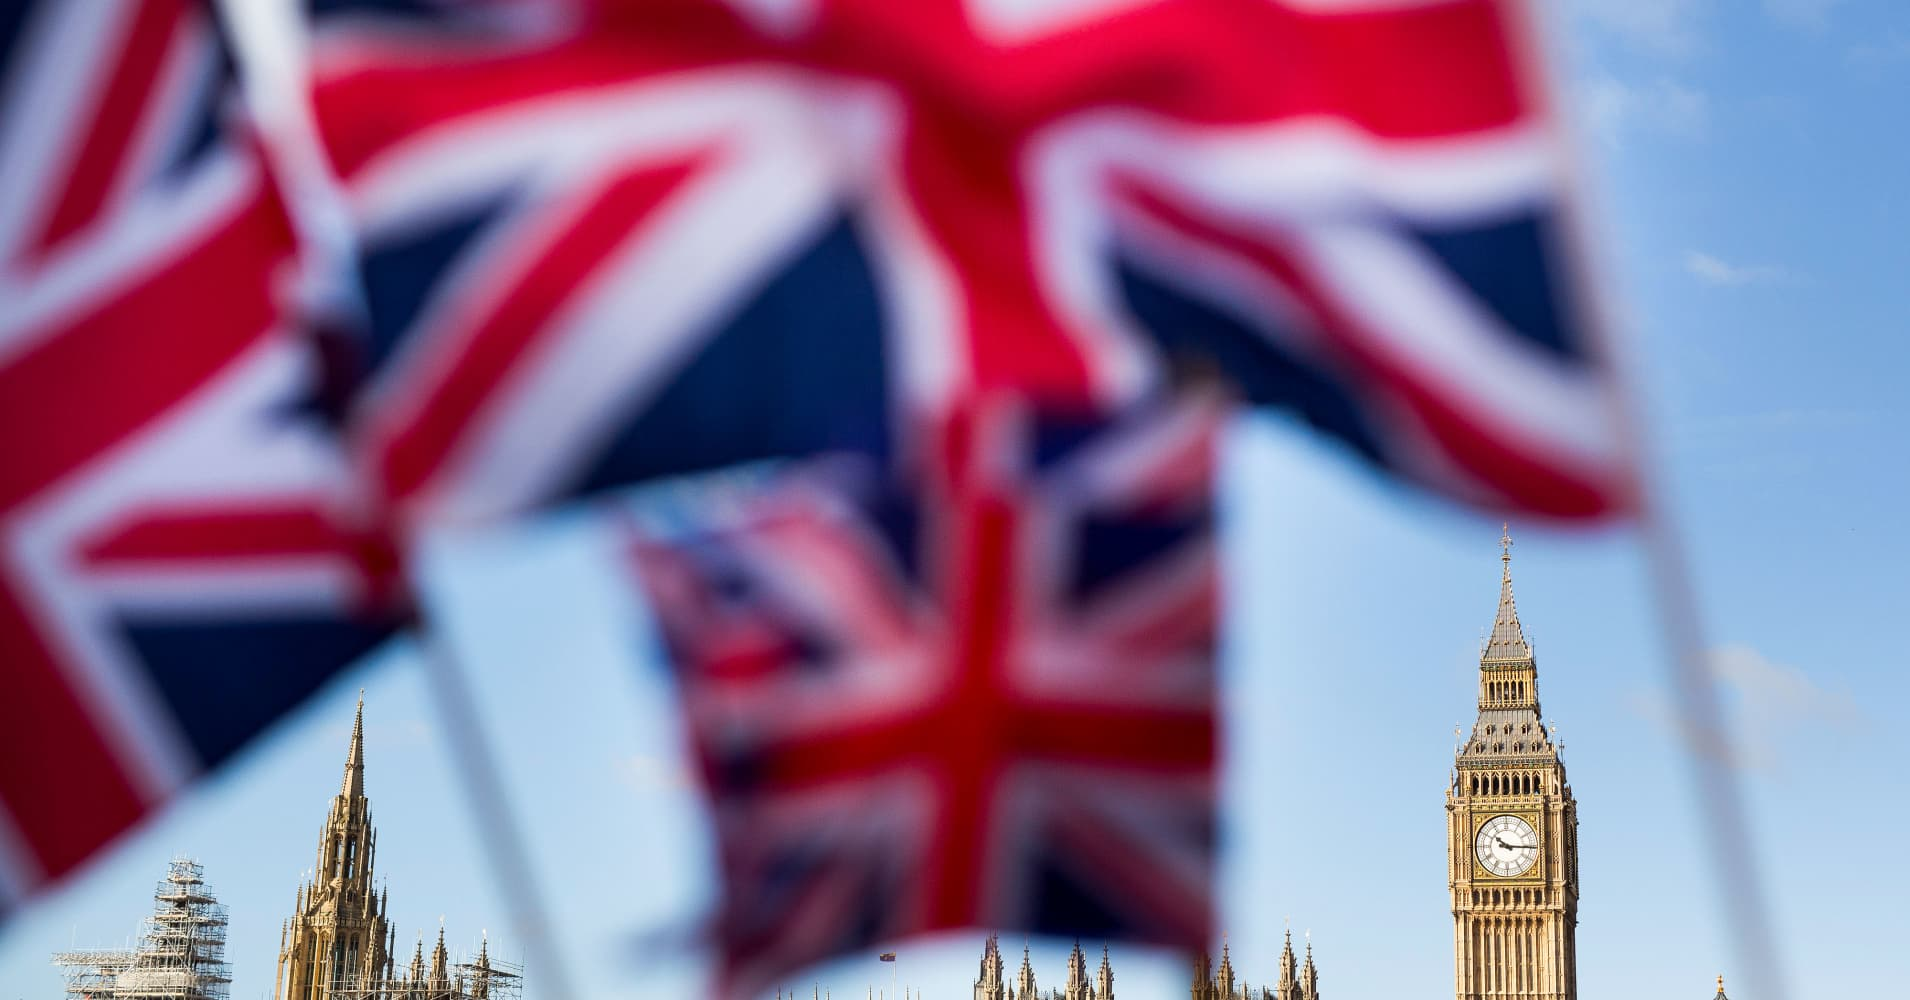 A display of U.K., Union Jack flags fly in front of The Houses of Parliament, in London, U.K., on Monday, Feb. 15, 2016.